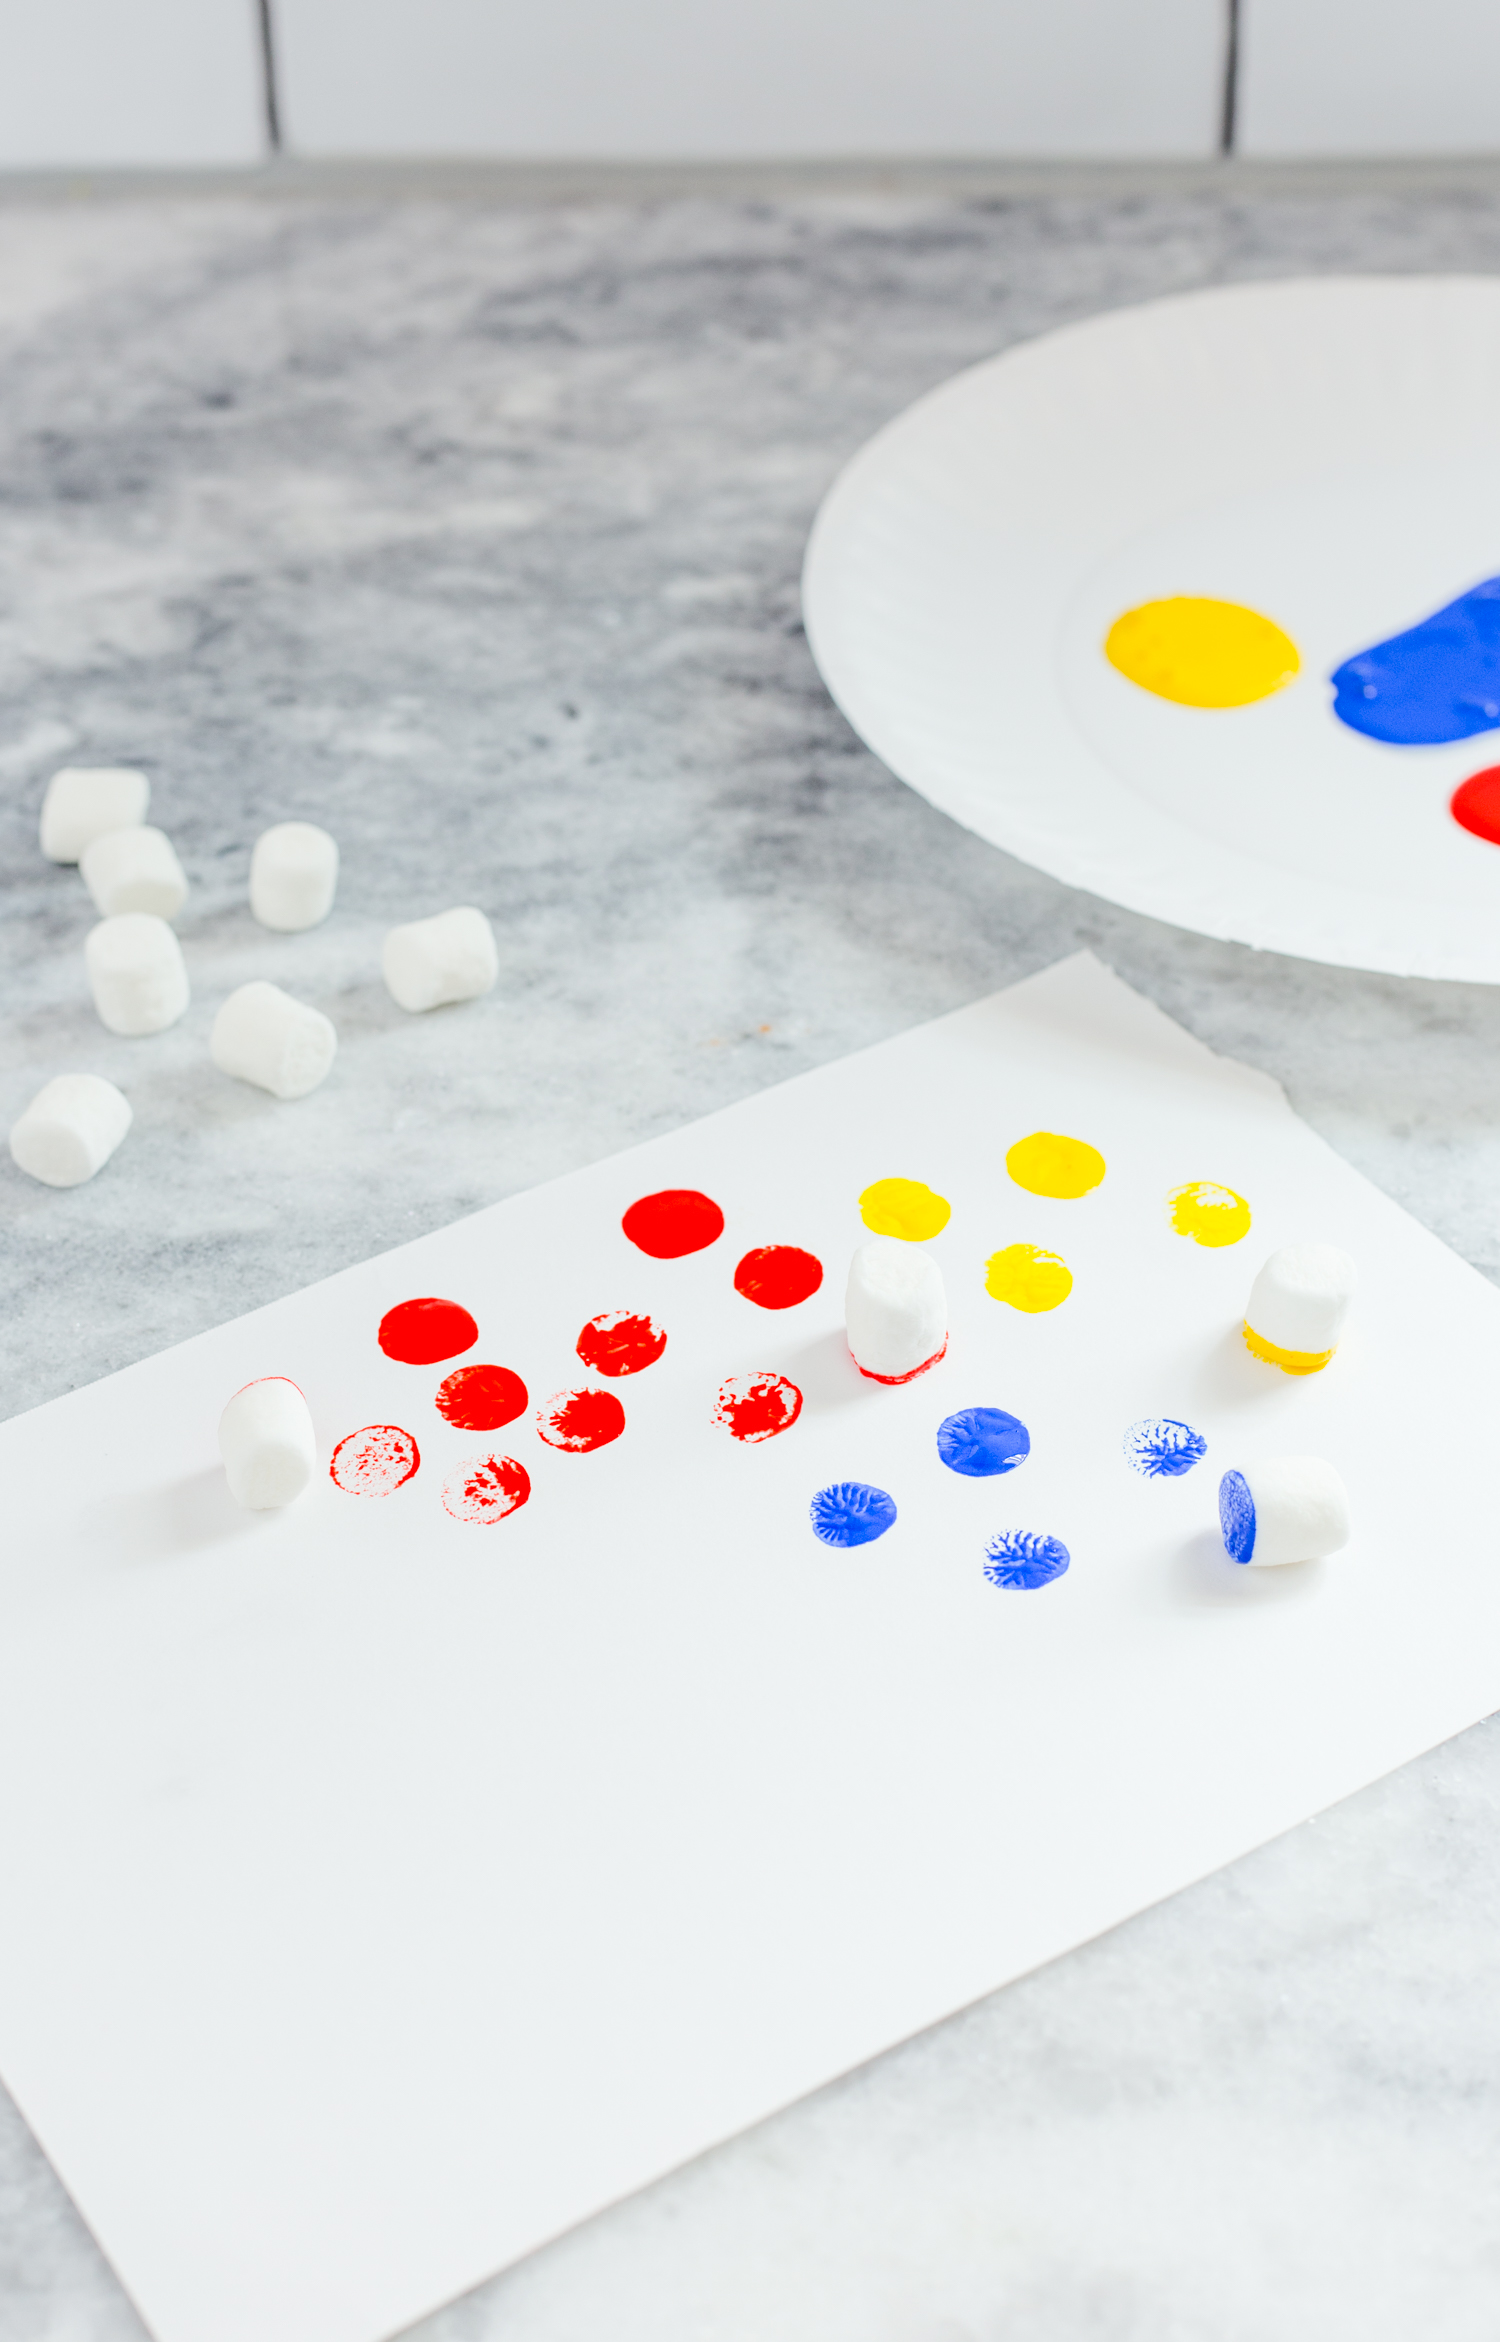 dot painting with marshmallows